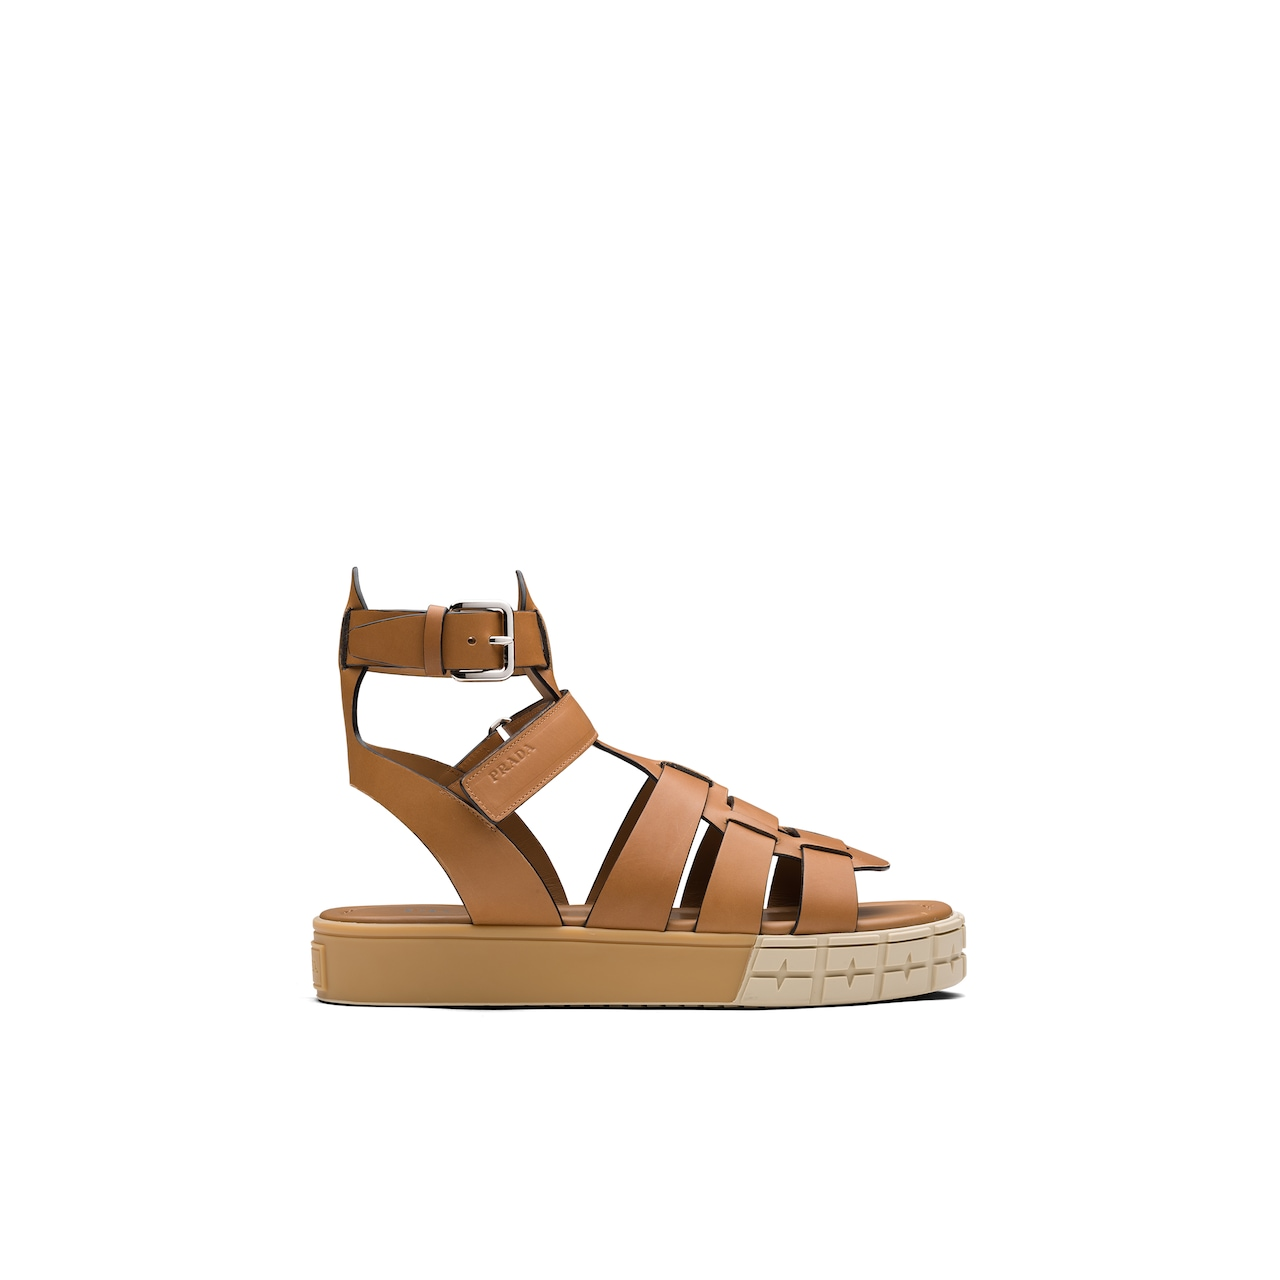 Prada Leather sandals 2